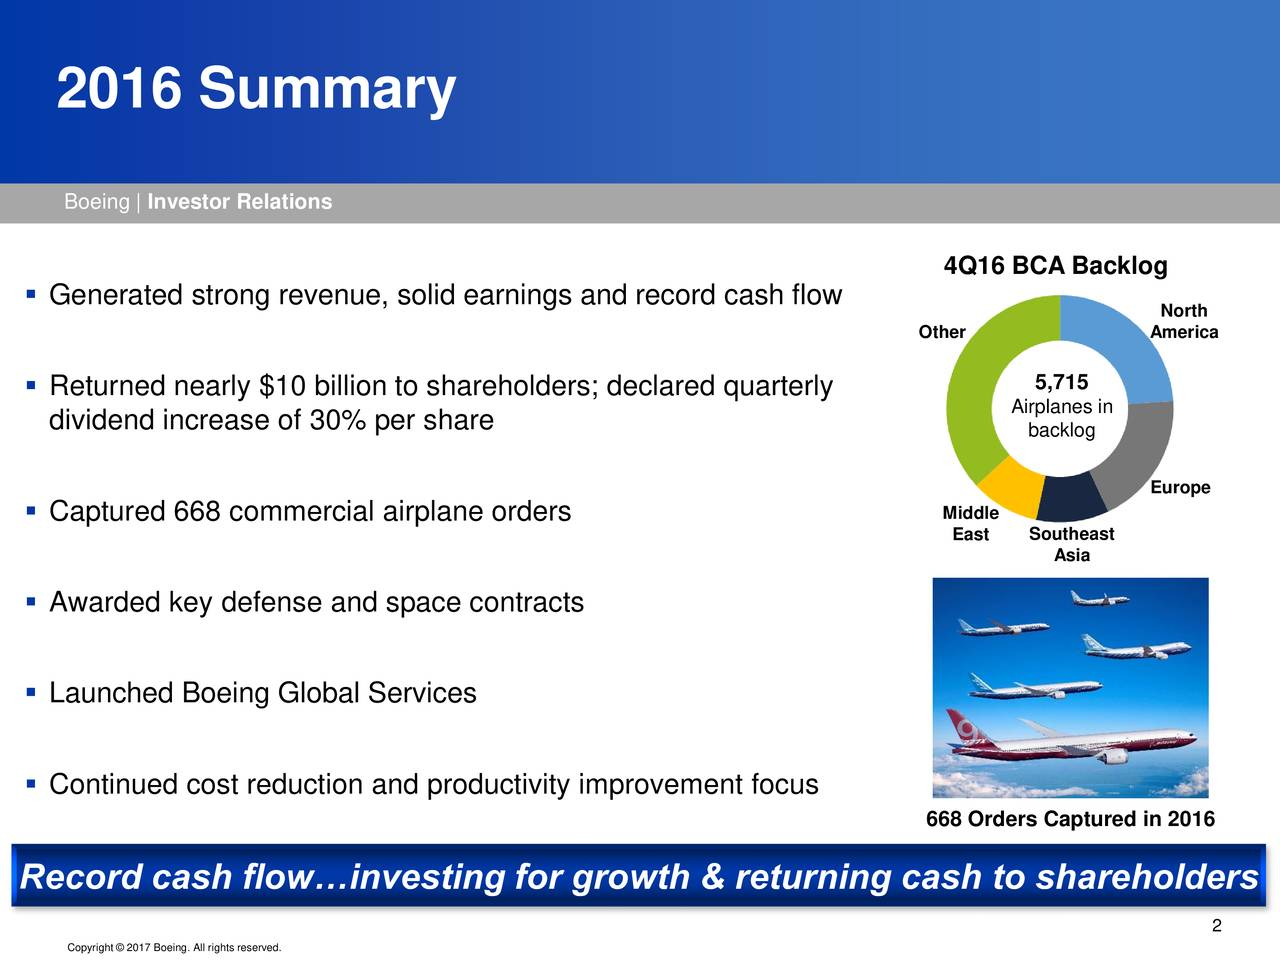 The Boeing Company (NYSE:BA